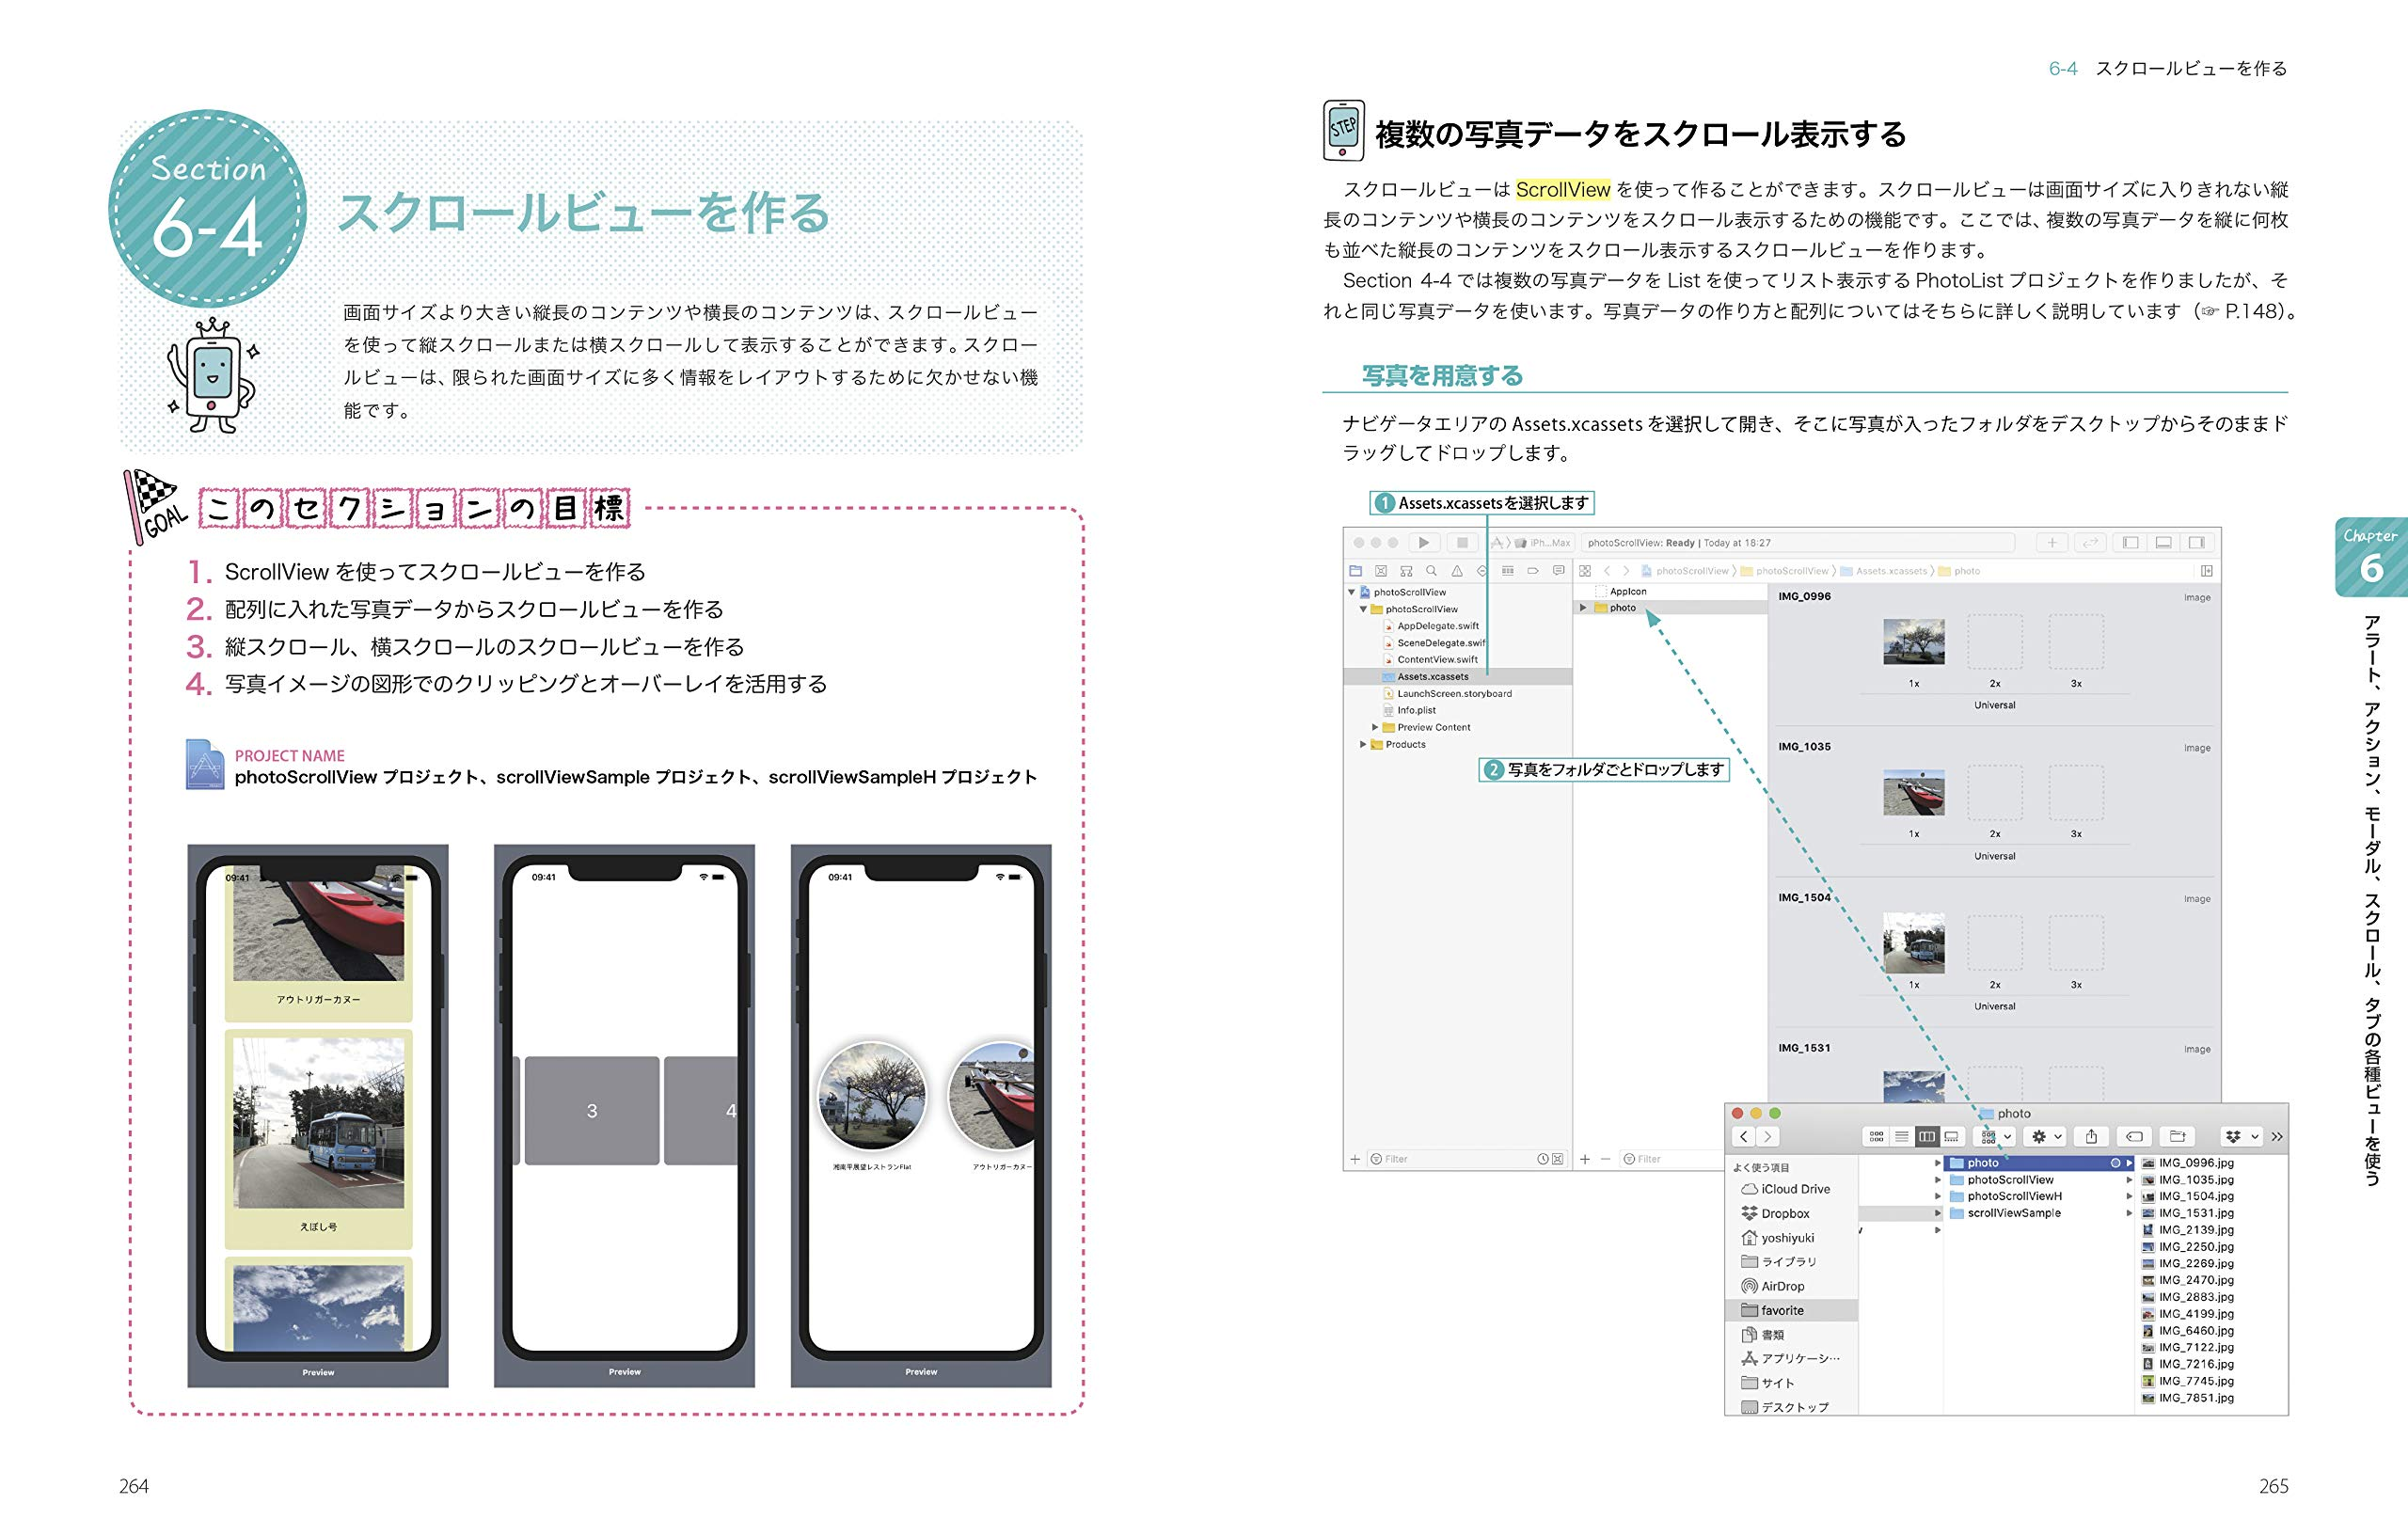 Thumbnail of 詳細! SwiftUI iPhoneアプリ開発入門ノート iOS 13 + Xcode11対応5$